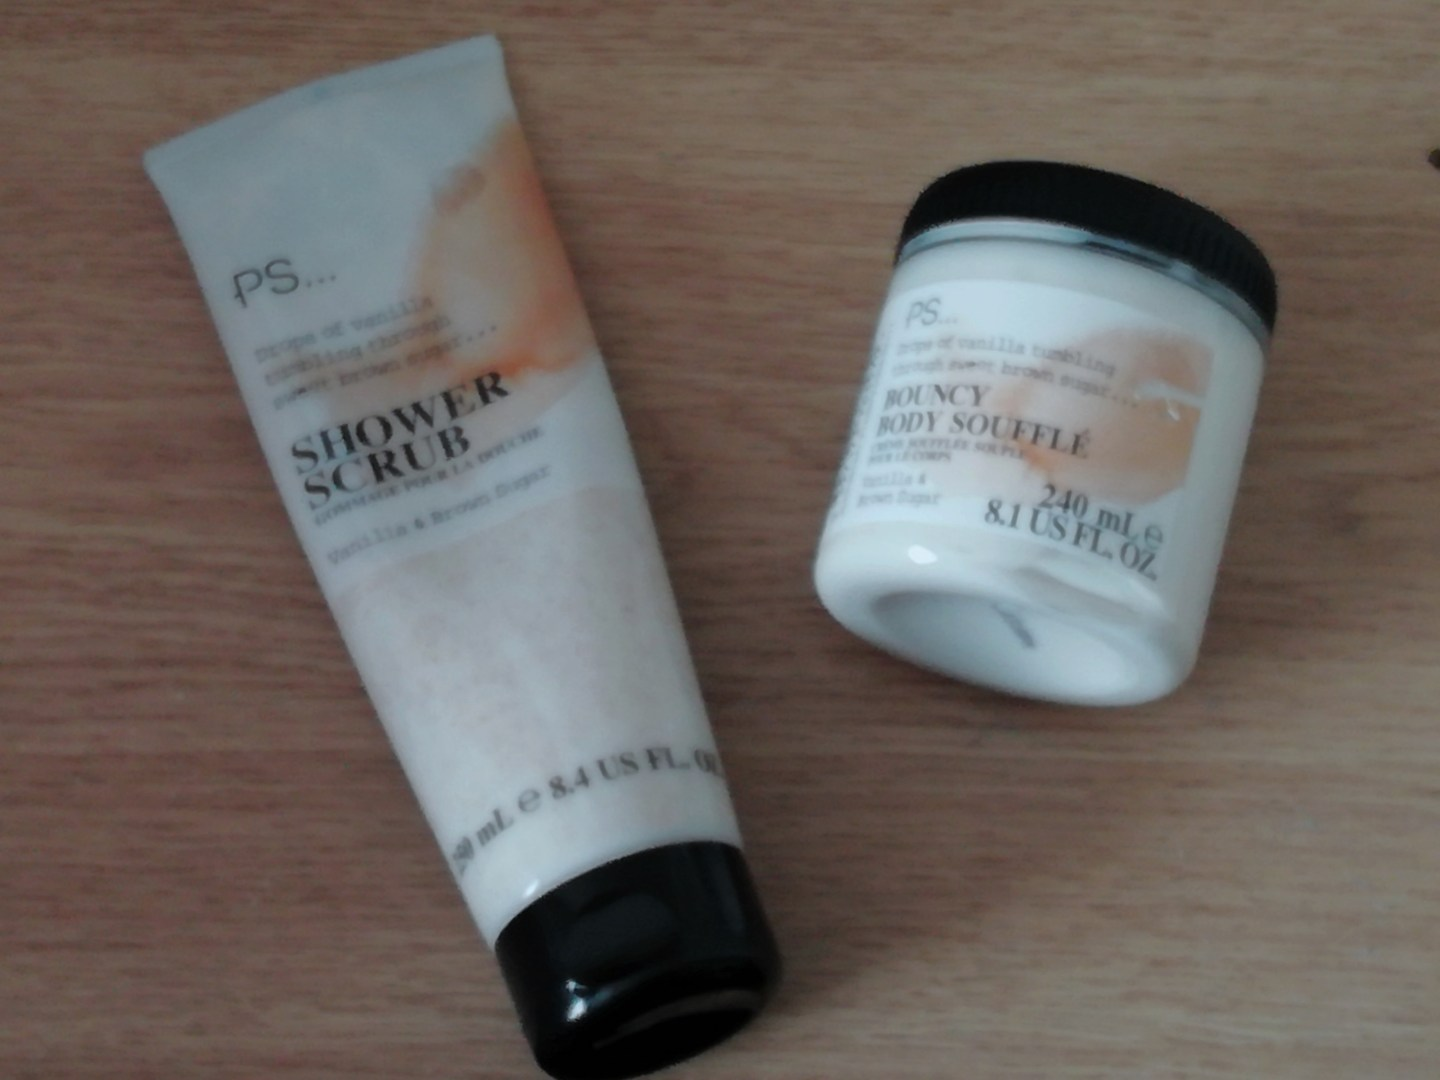 Primark Shower Scrub